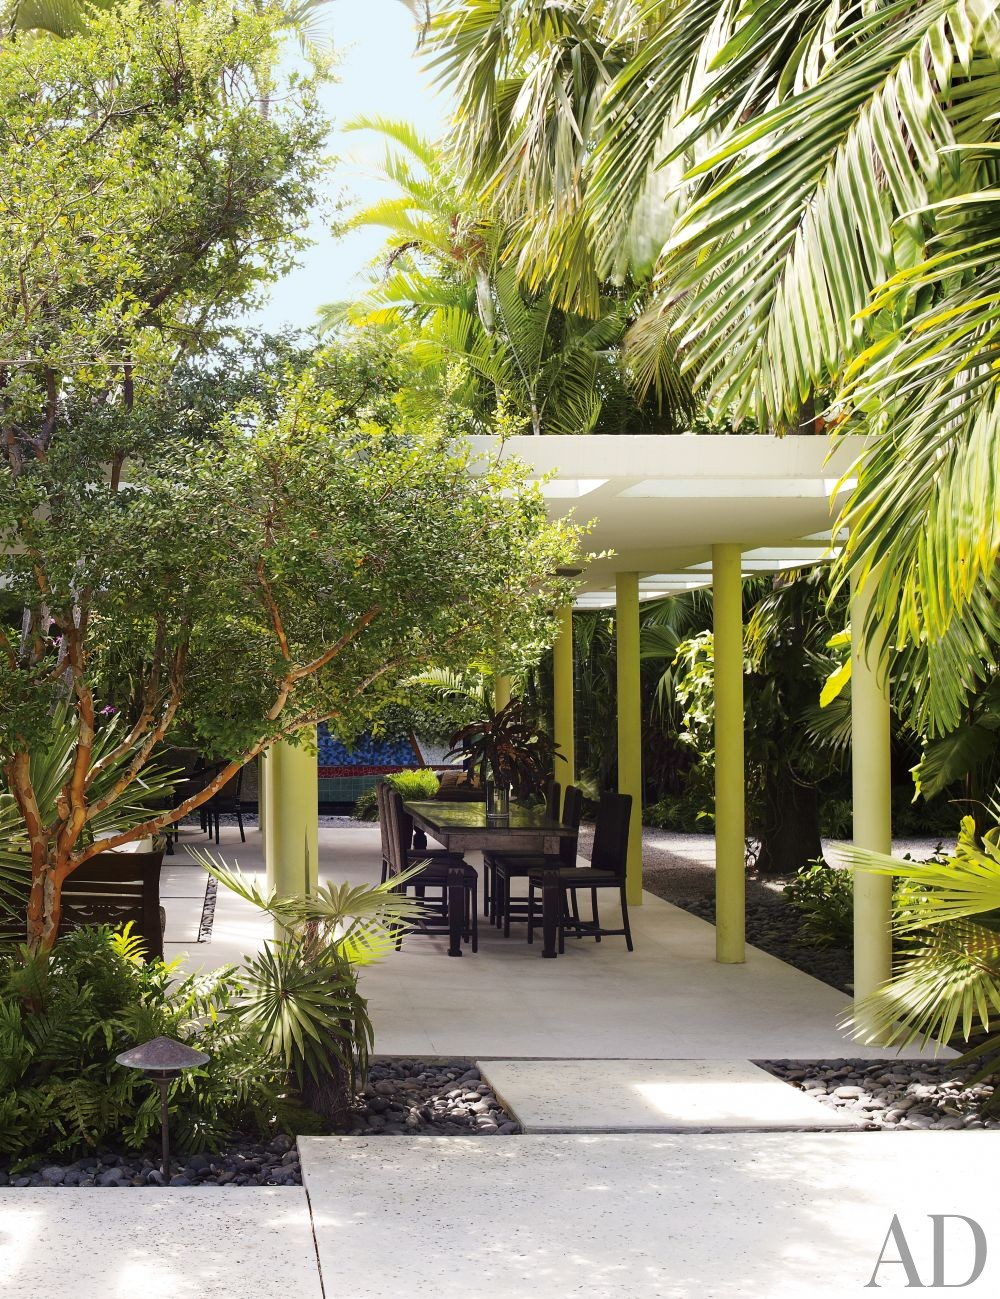 Exotic Outdoor Space by Malcolm James Kutner Inc. and Thomas E. Pope in Key West, Florida